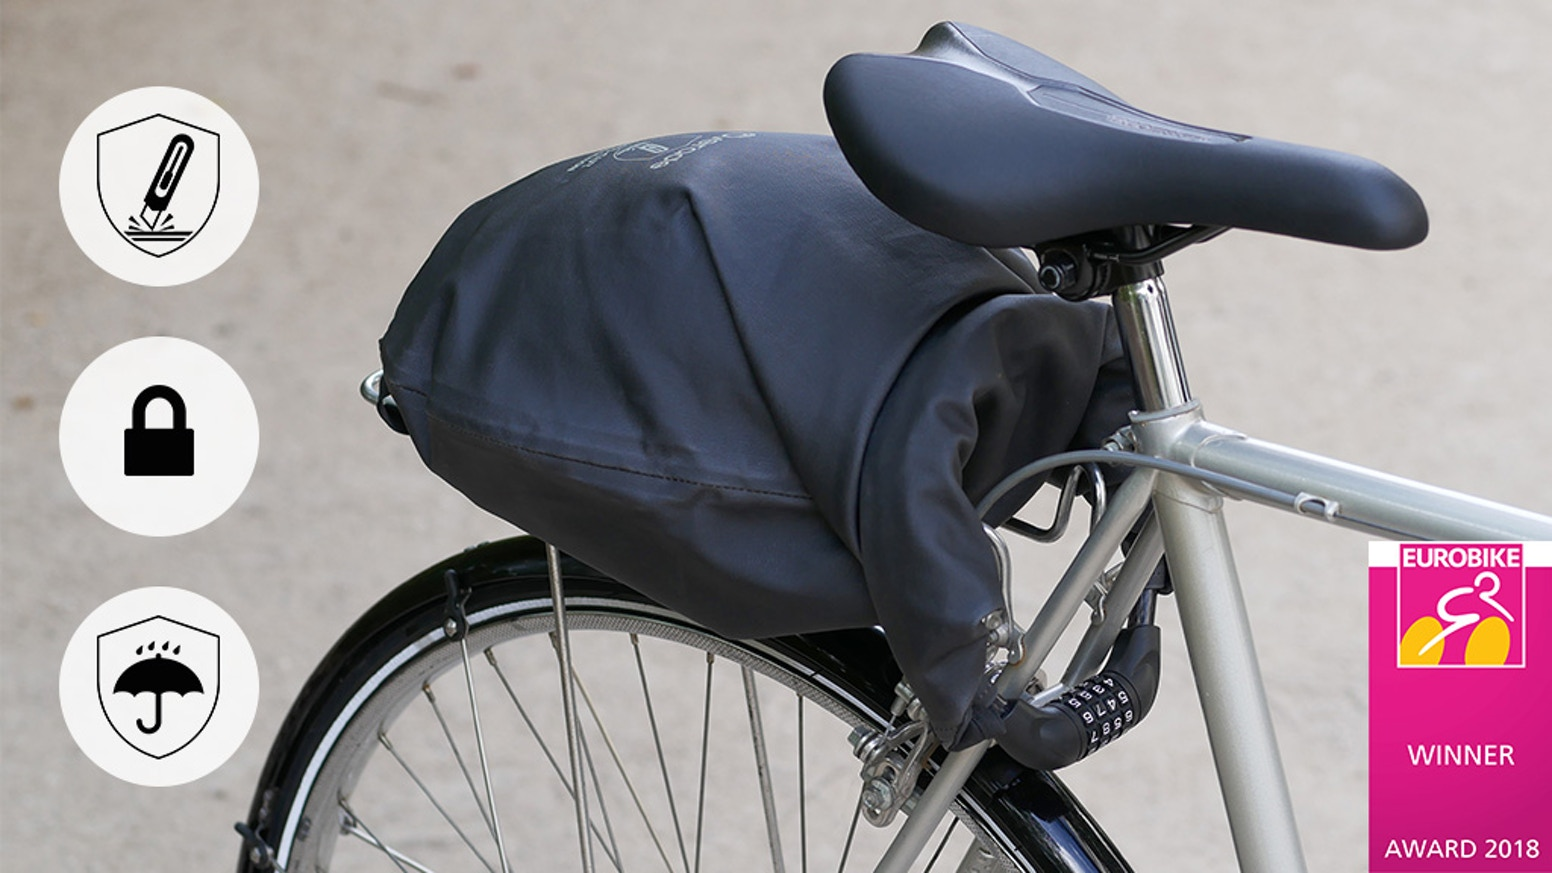 3a1695d742bc LOXI: The 1st Anti-theft & Waterproof Bag for your Bike by Overade ...